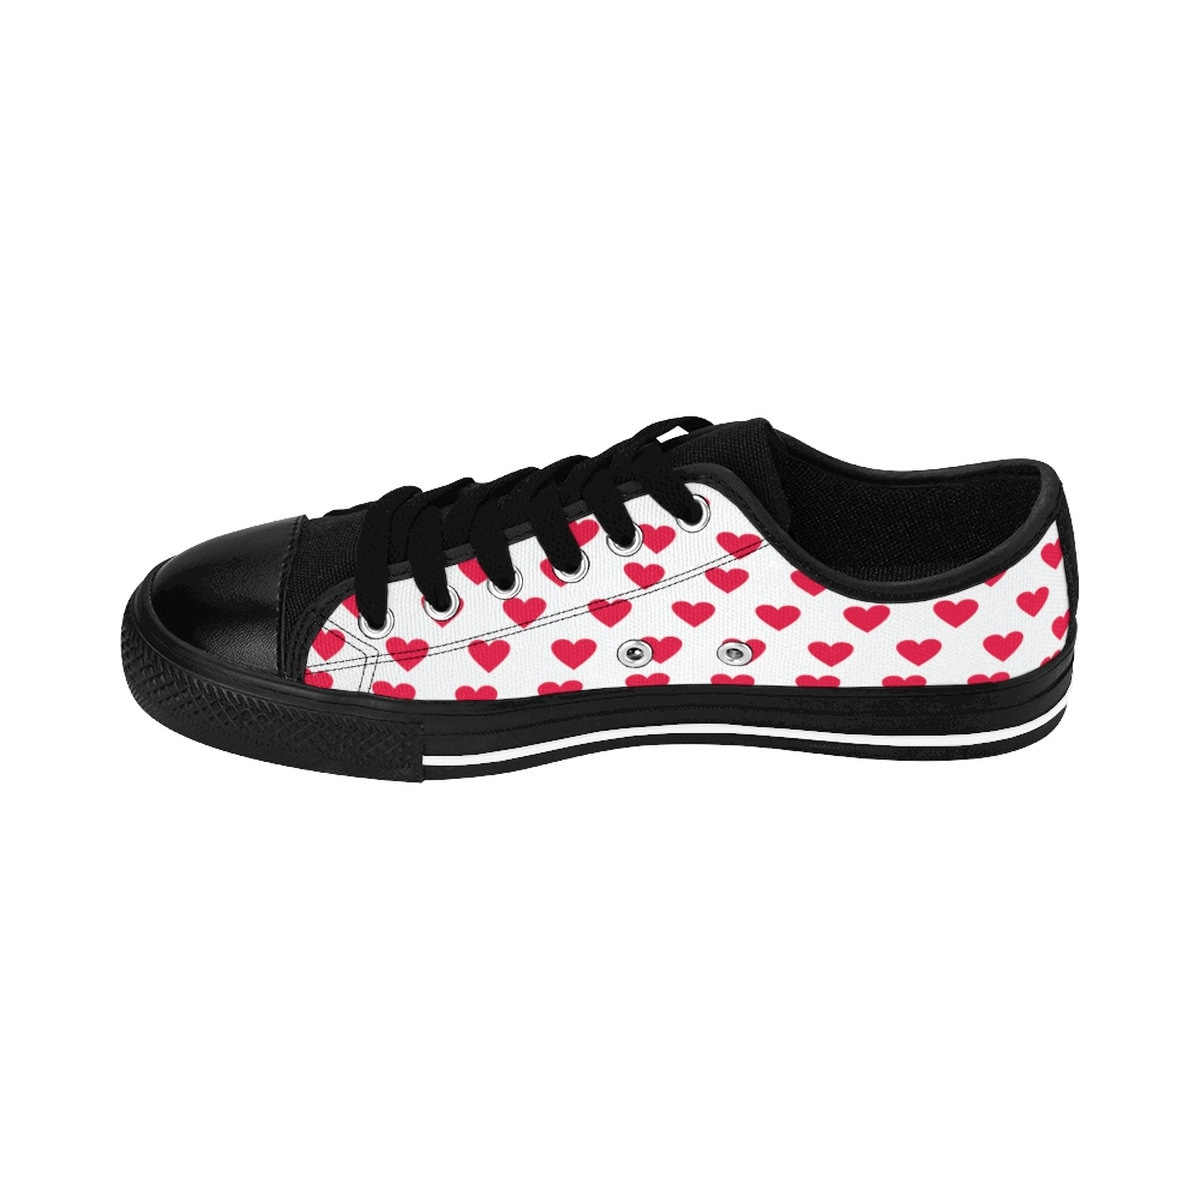 rojo  Hearts Mujer Low Top Zapatillas Mujer Low Tops Canvas Zapatos Valentine's Day Gift for Her Hearts Heart Zapatos Gifts for Her 92b65c